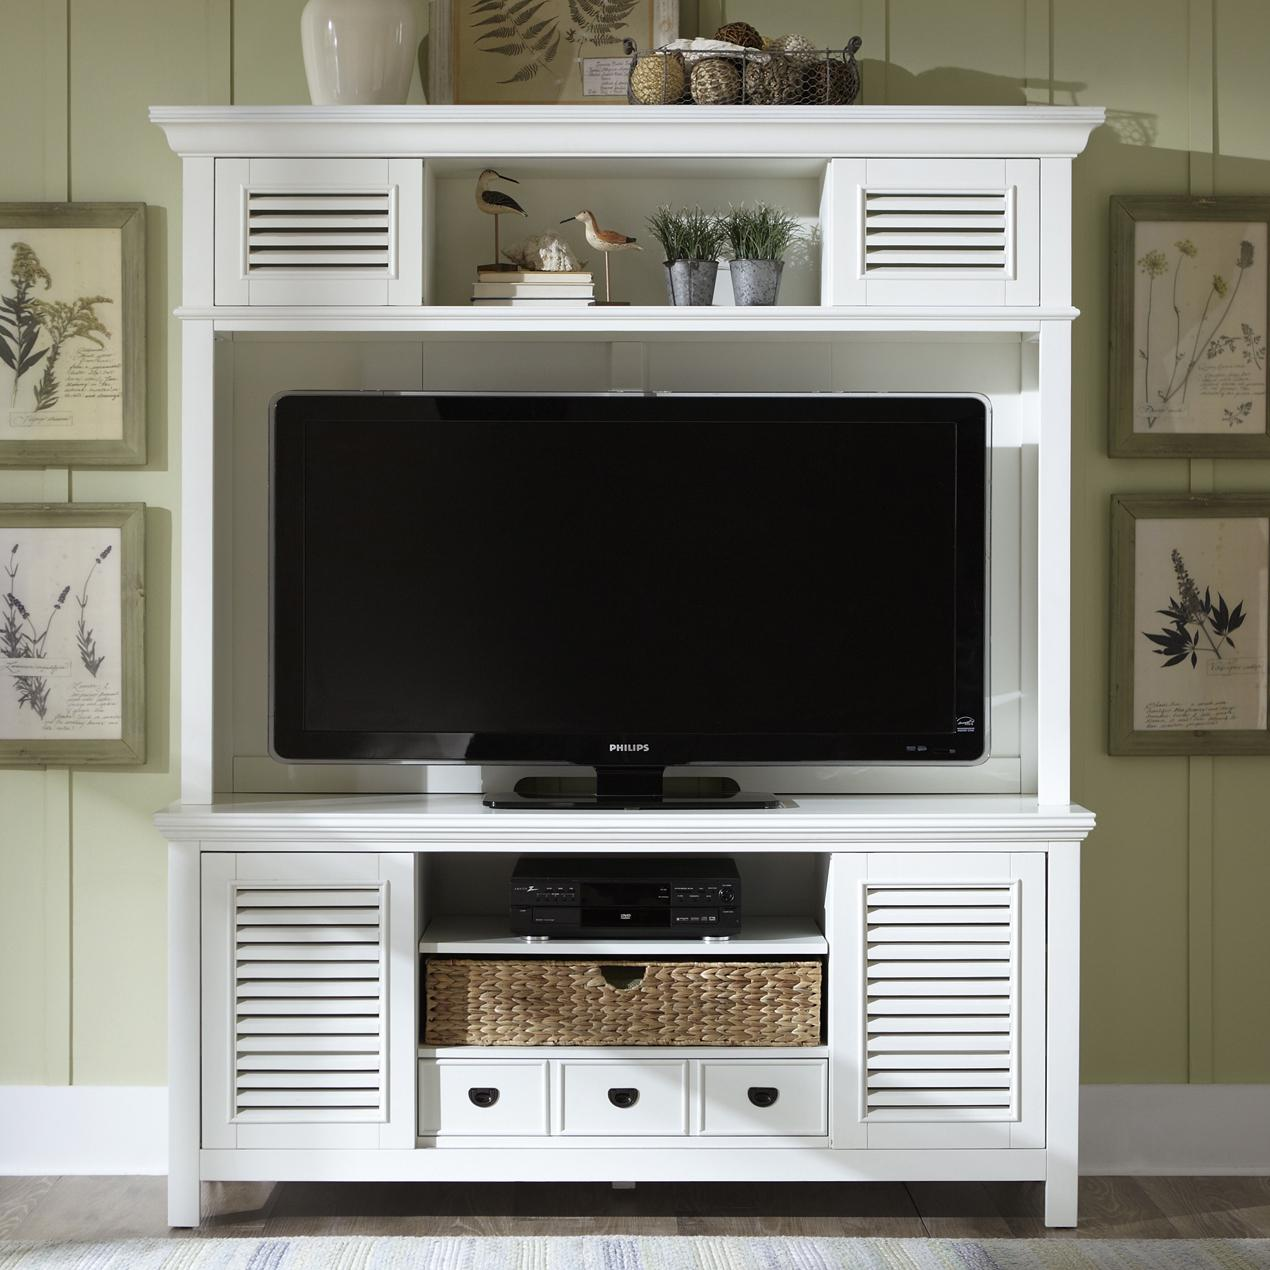 techni storage products mobili rta tvs for hry color entertainment up hickory to with center hutch